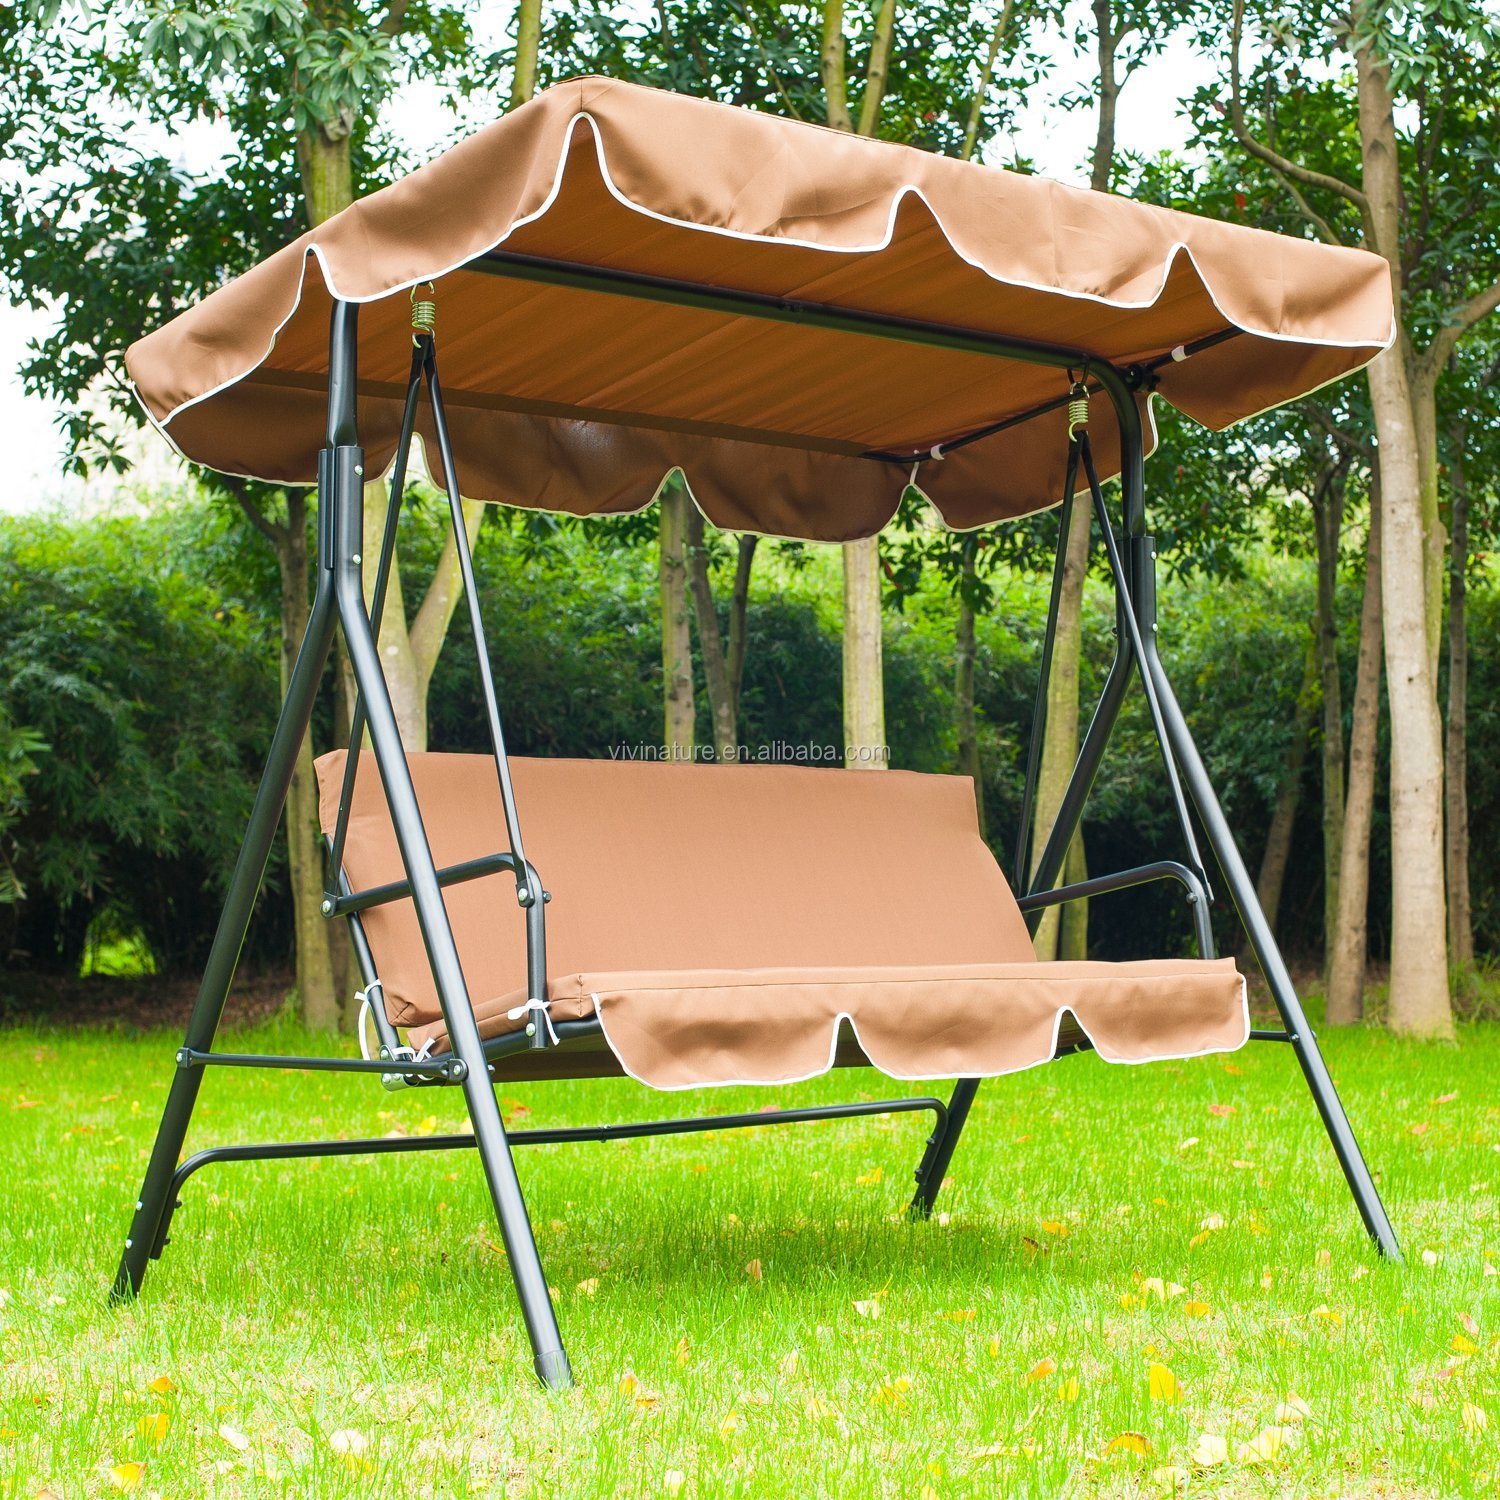 3 Person Outdoor Patio Porch Canopy Swing